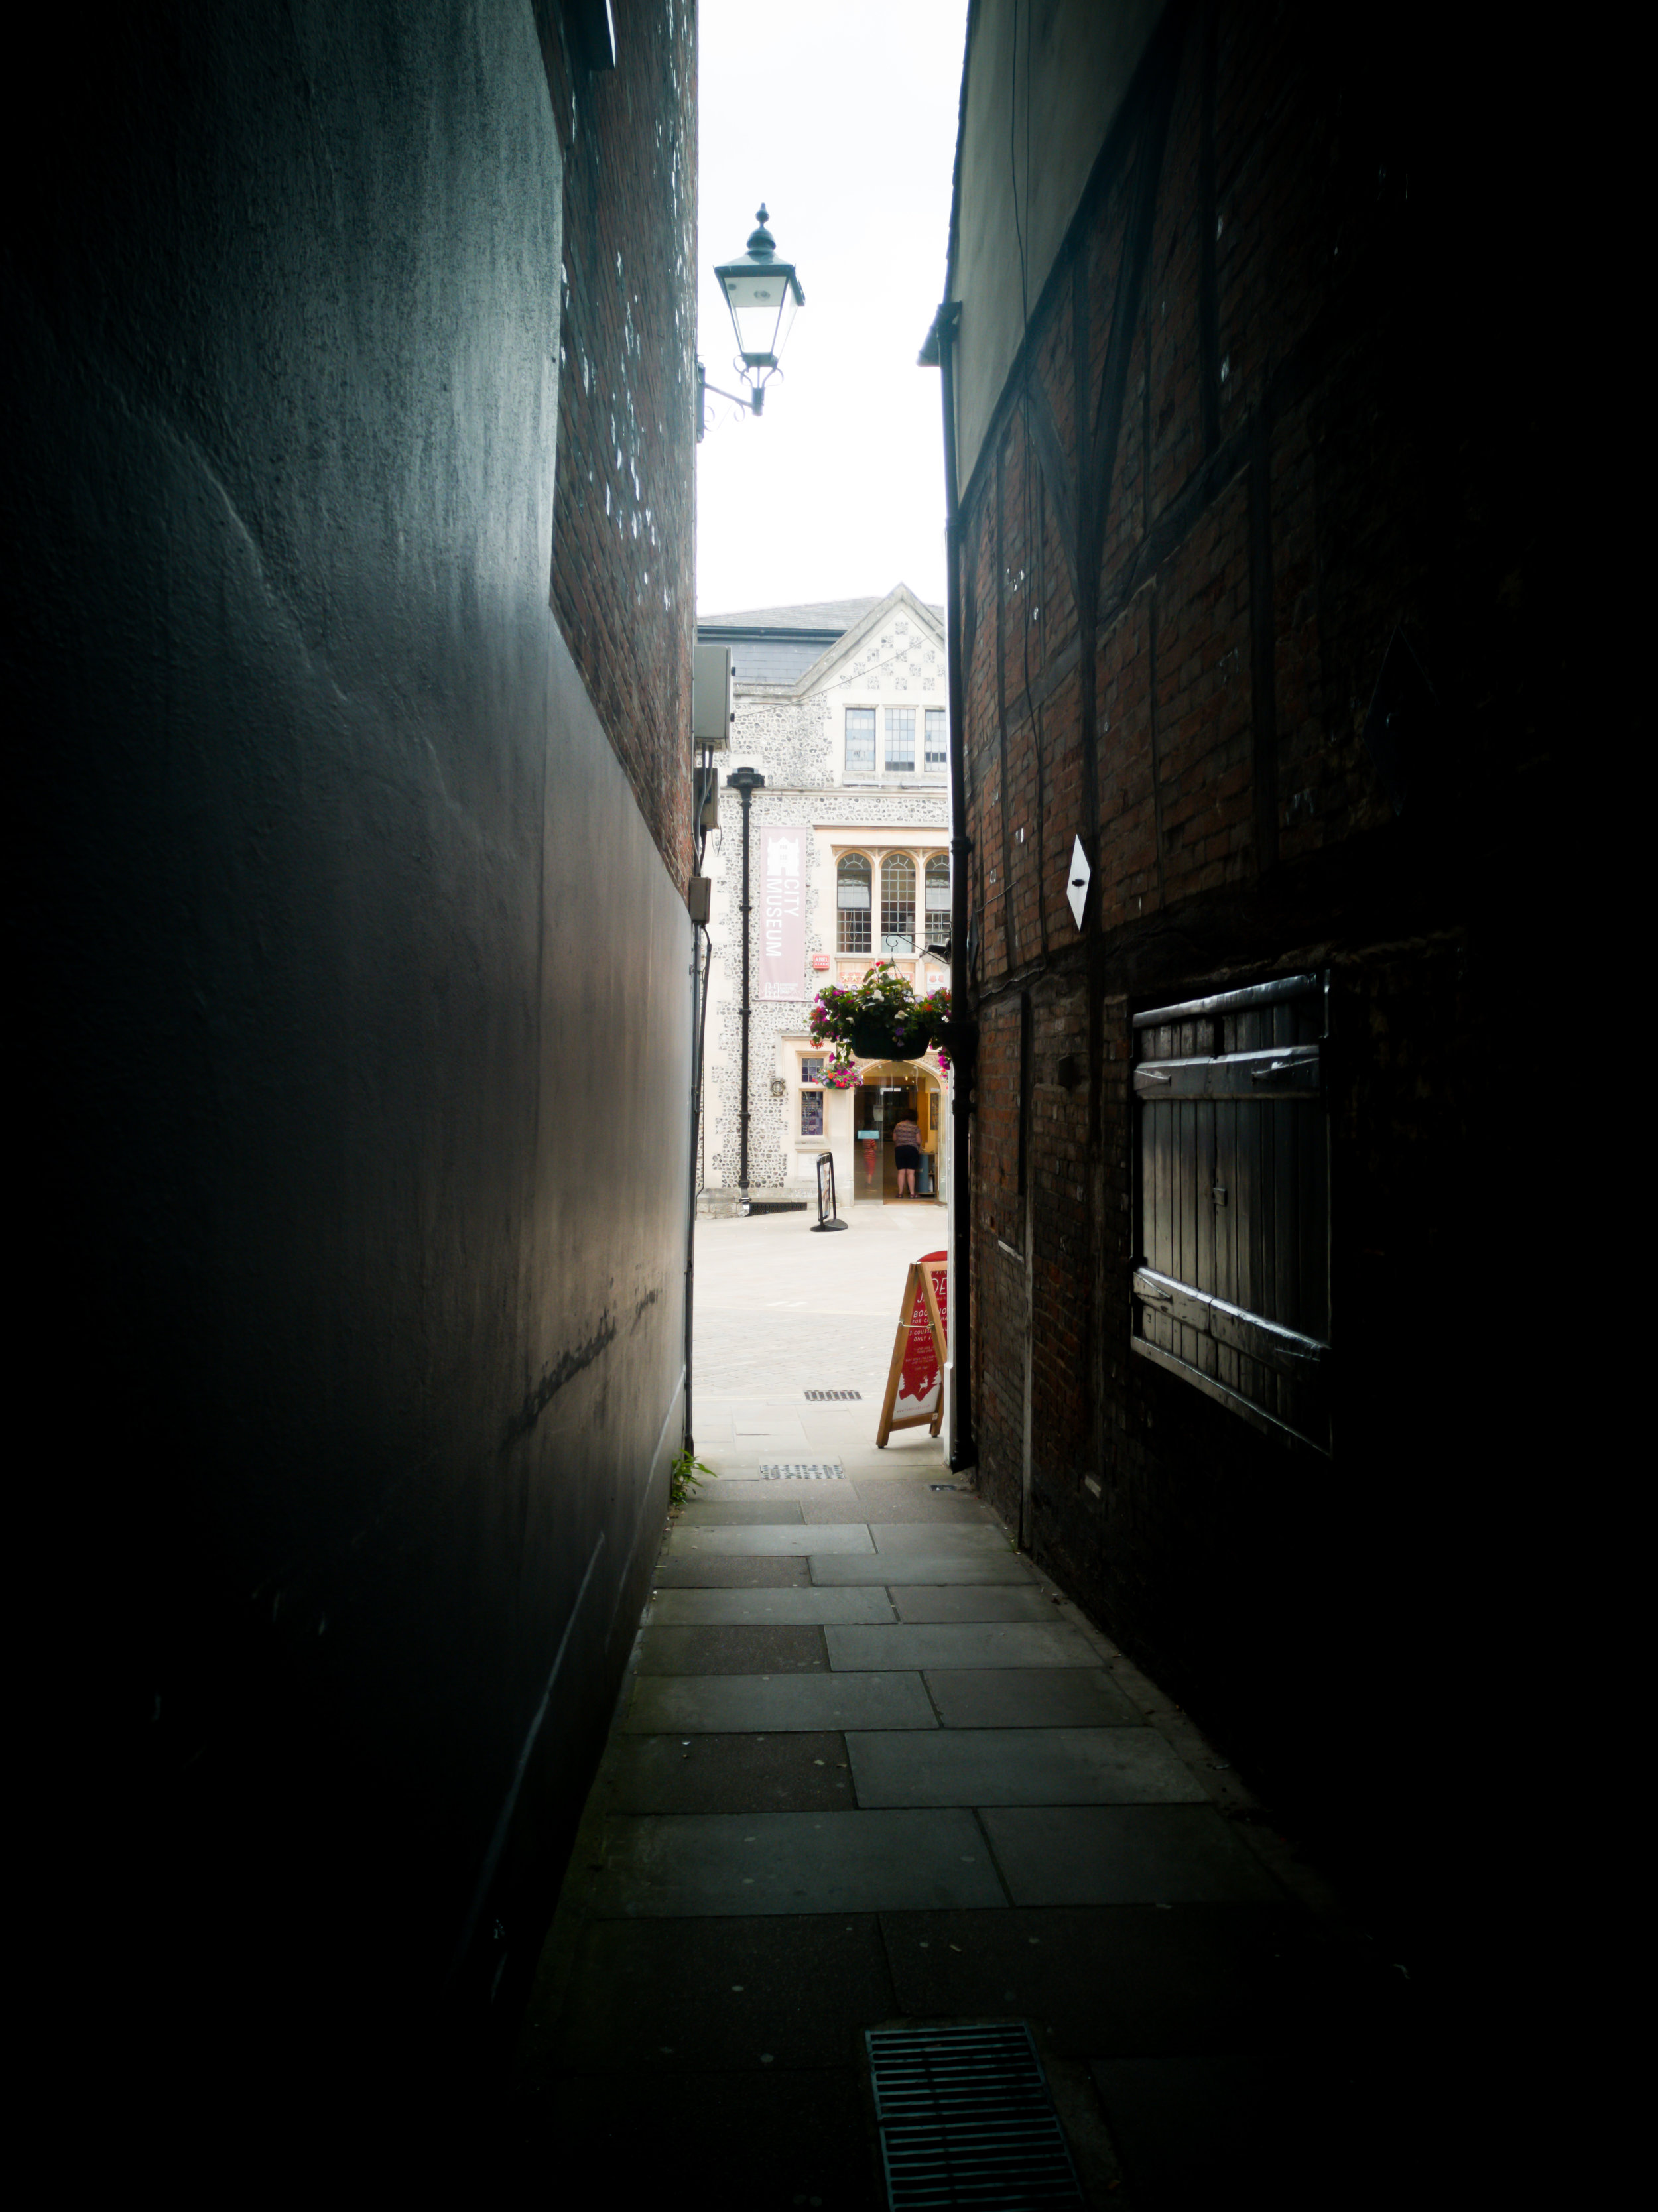 Looking down a Winchester street by Hampshire Photographer Evie Winter